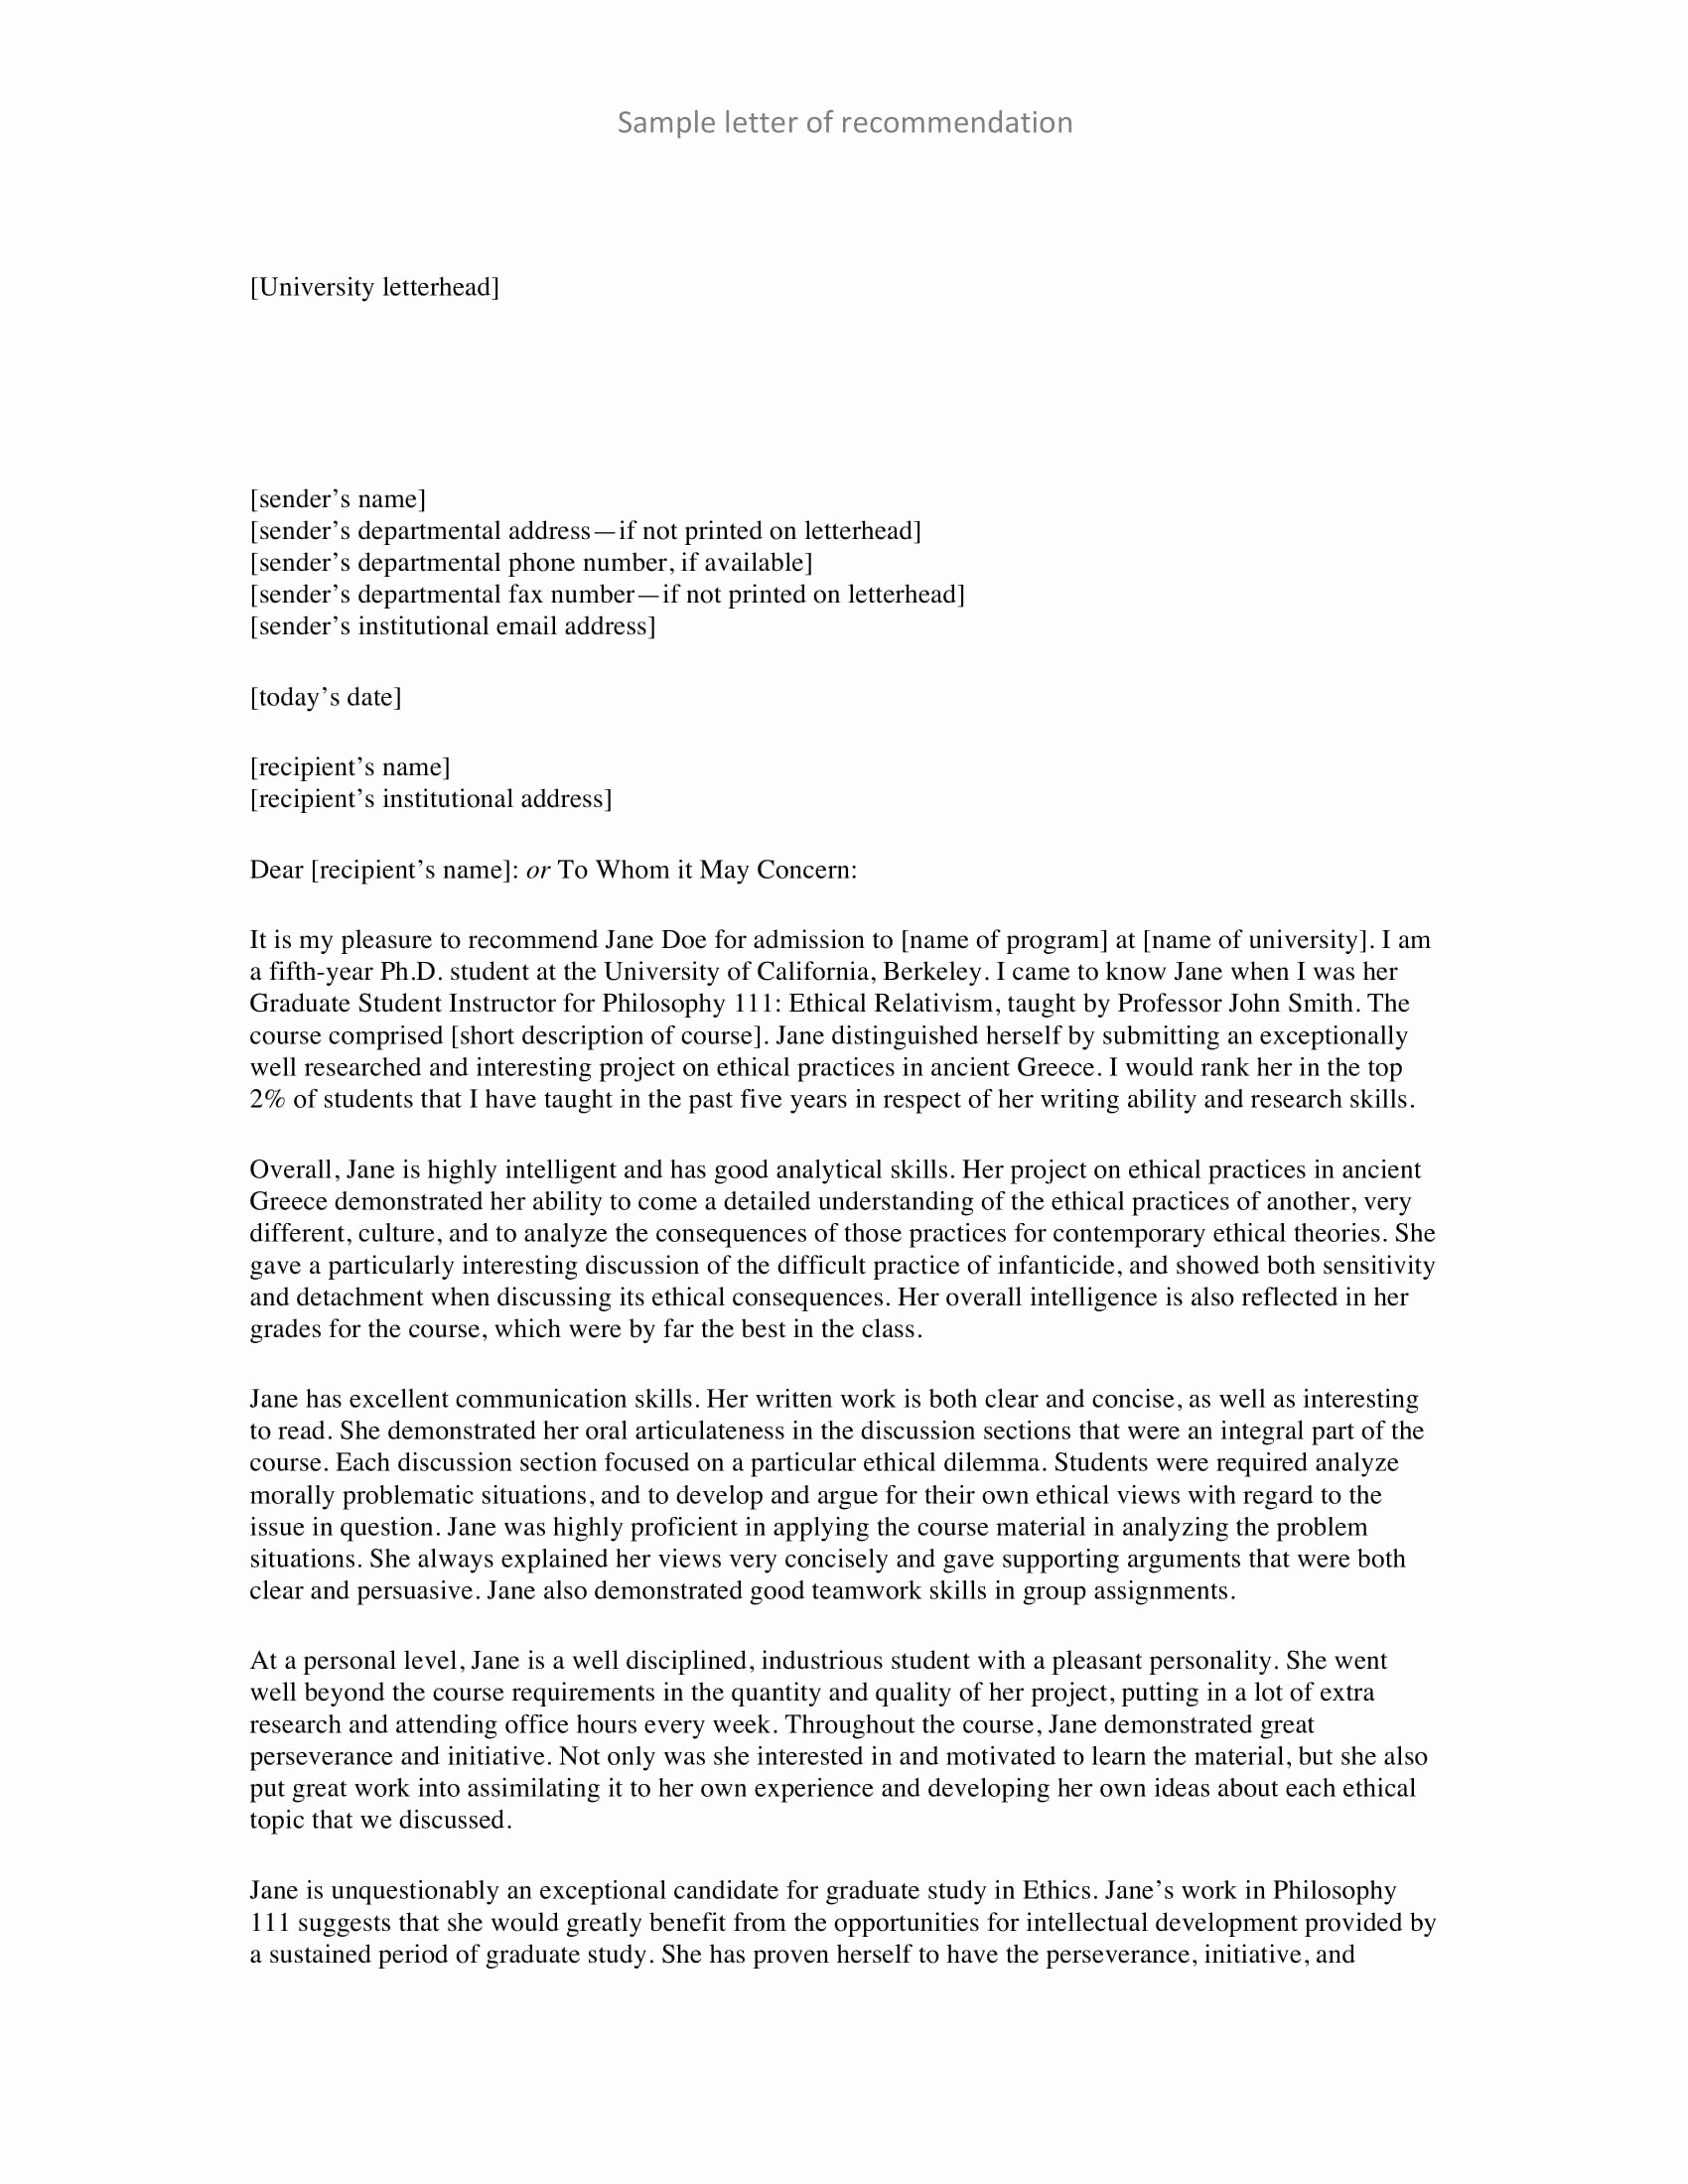 Personal Letter format Examples Beautiful 9 Personal Re Mendation Letter Examples Pdf